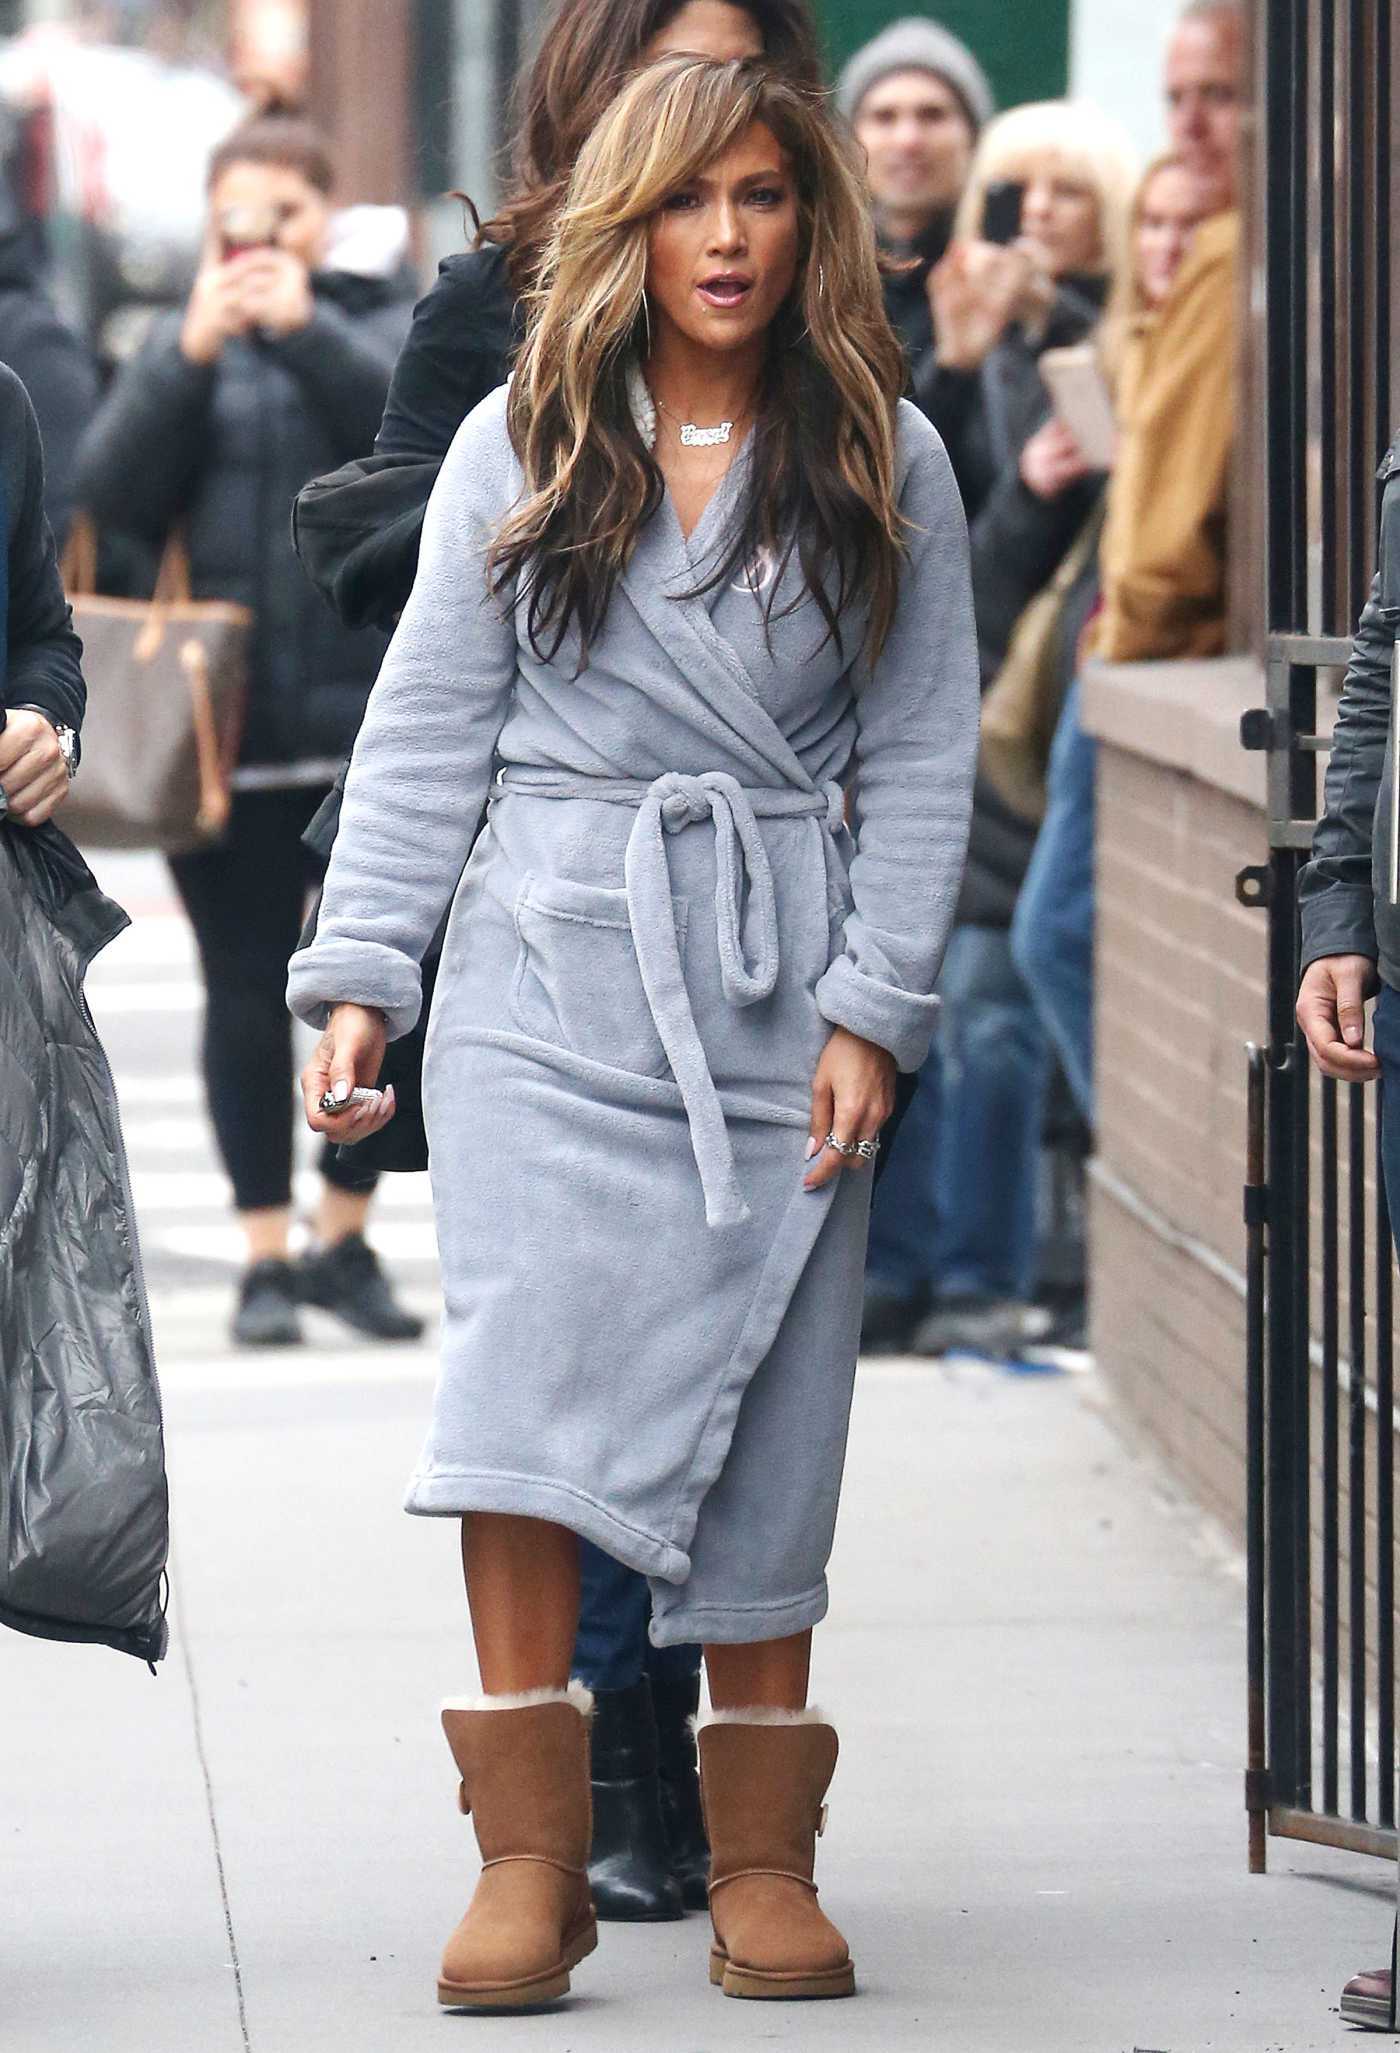 Jennifer Lopez in a Gray Bathrobe on the Set of Hustlers in New York 03/28/2019